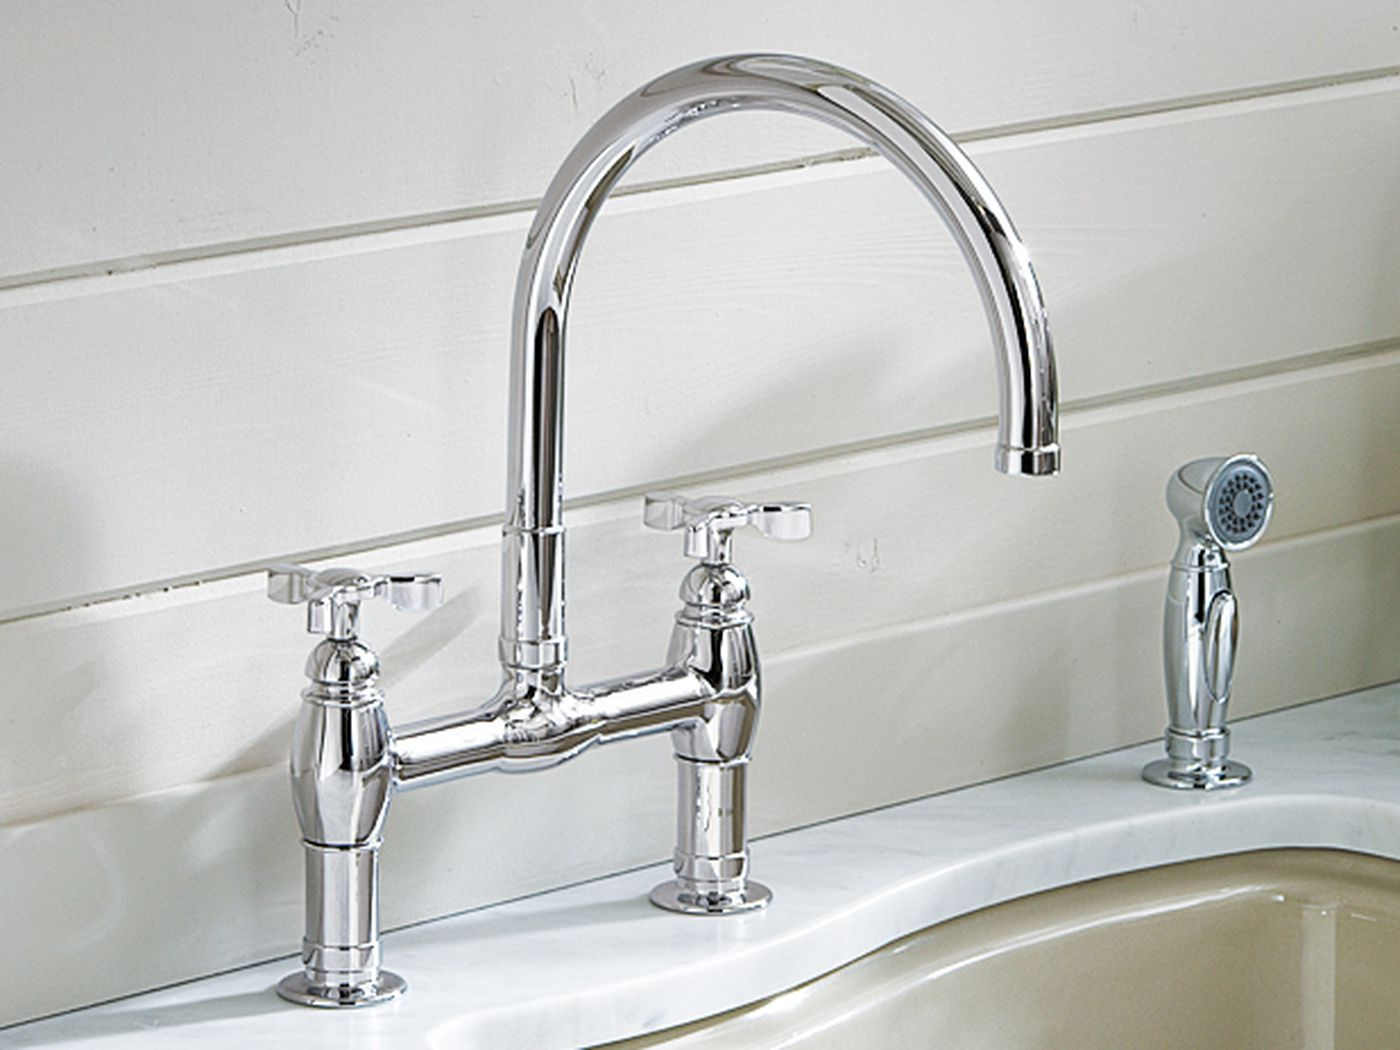 how to fix a leaky faucet step by step